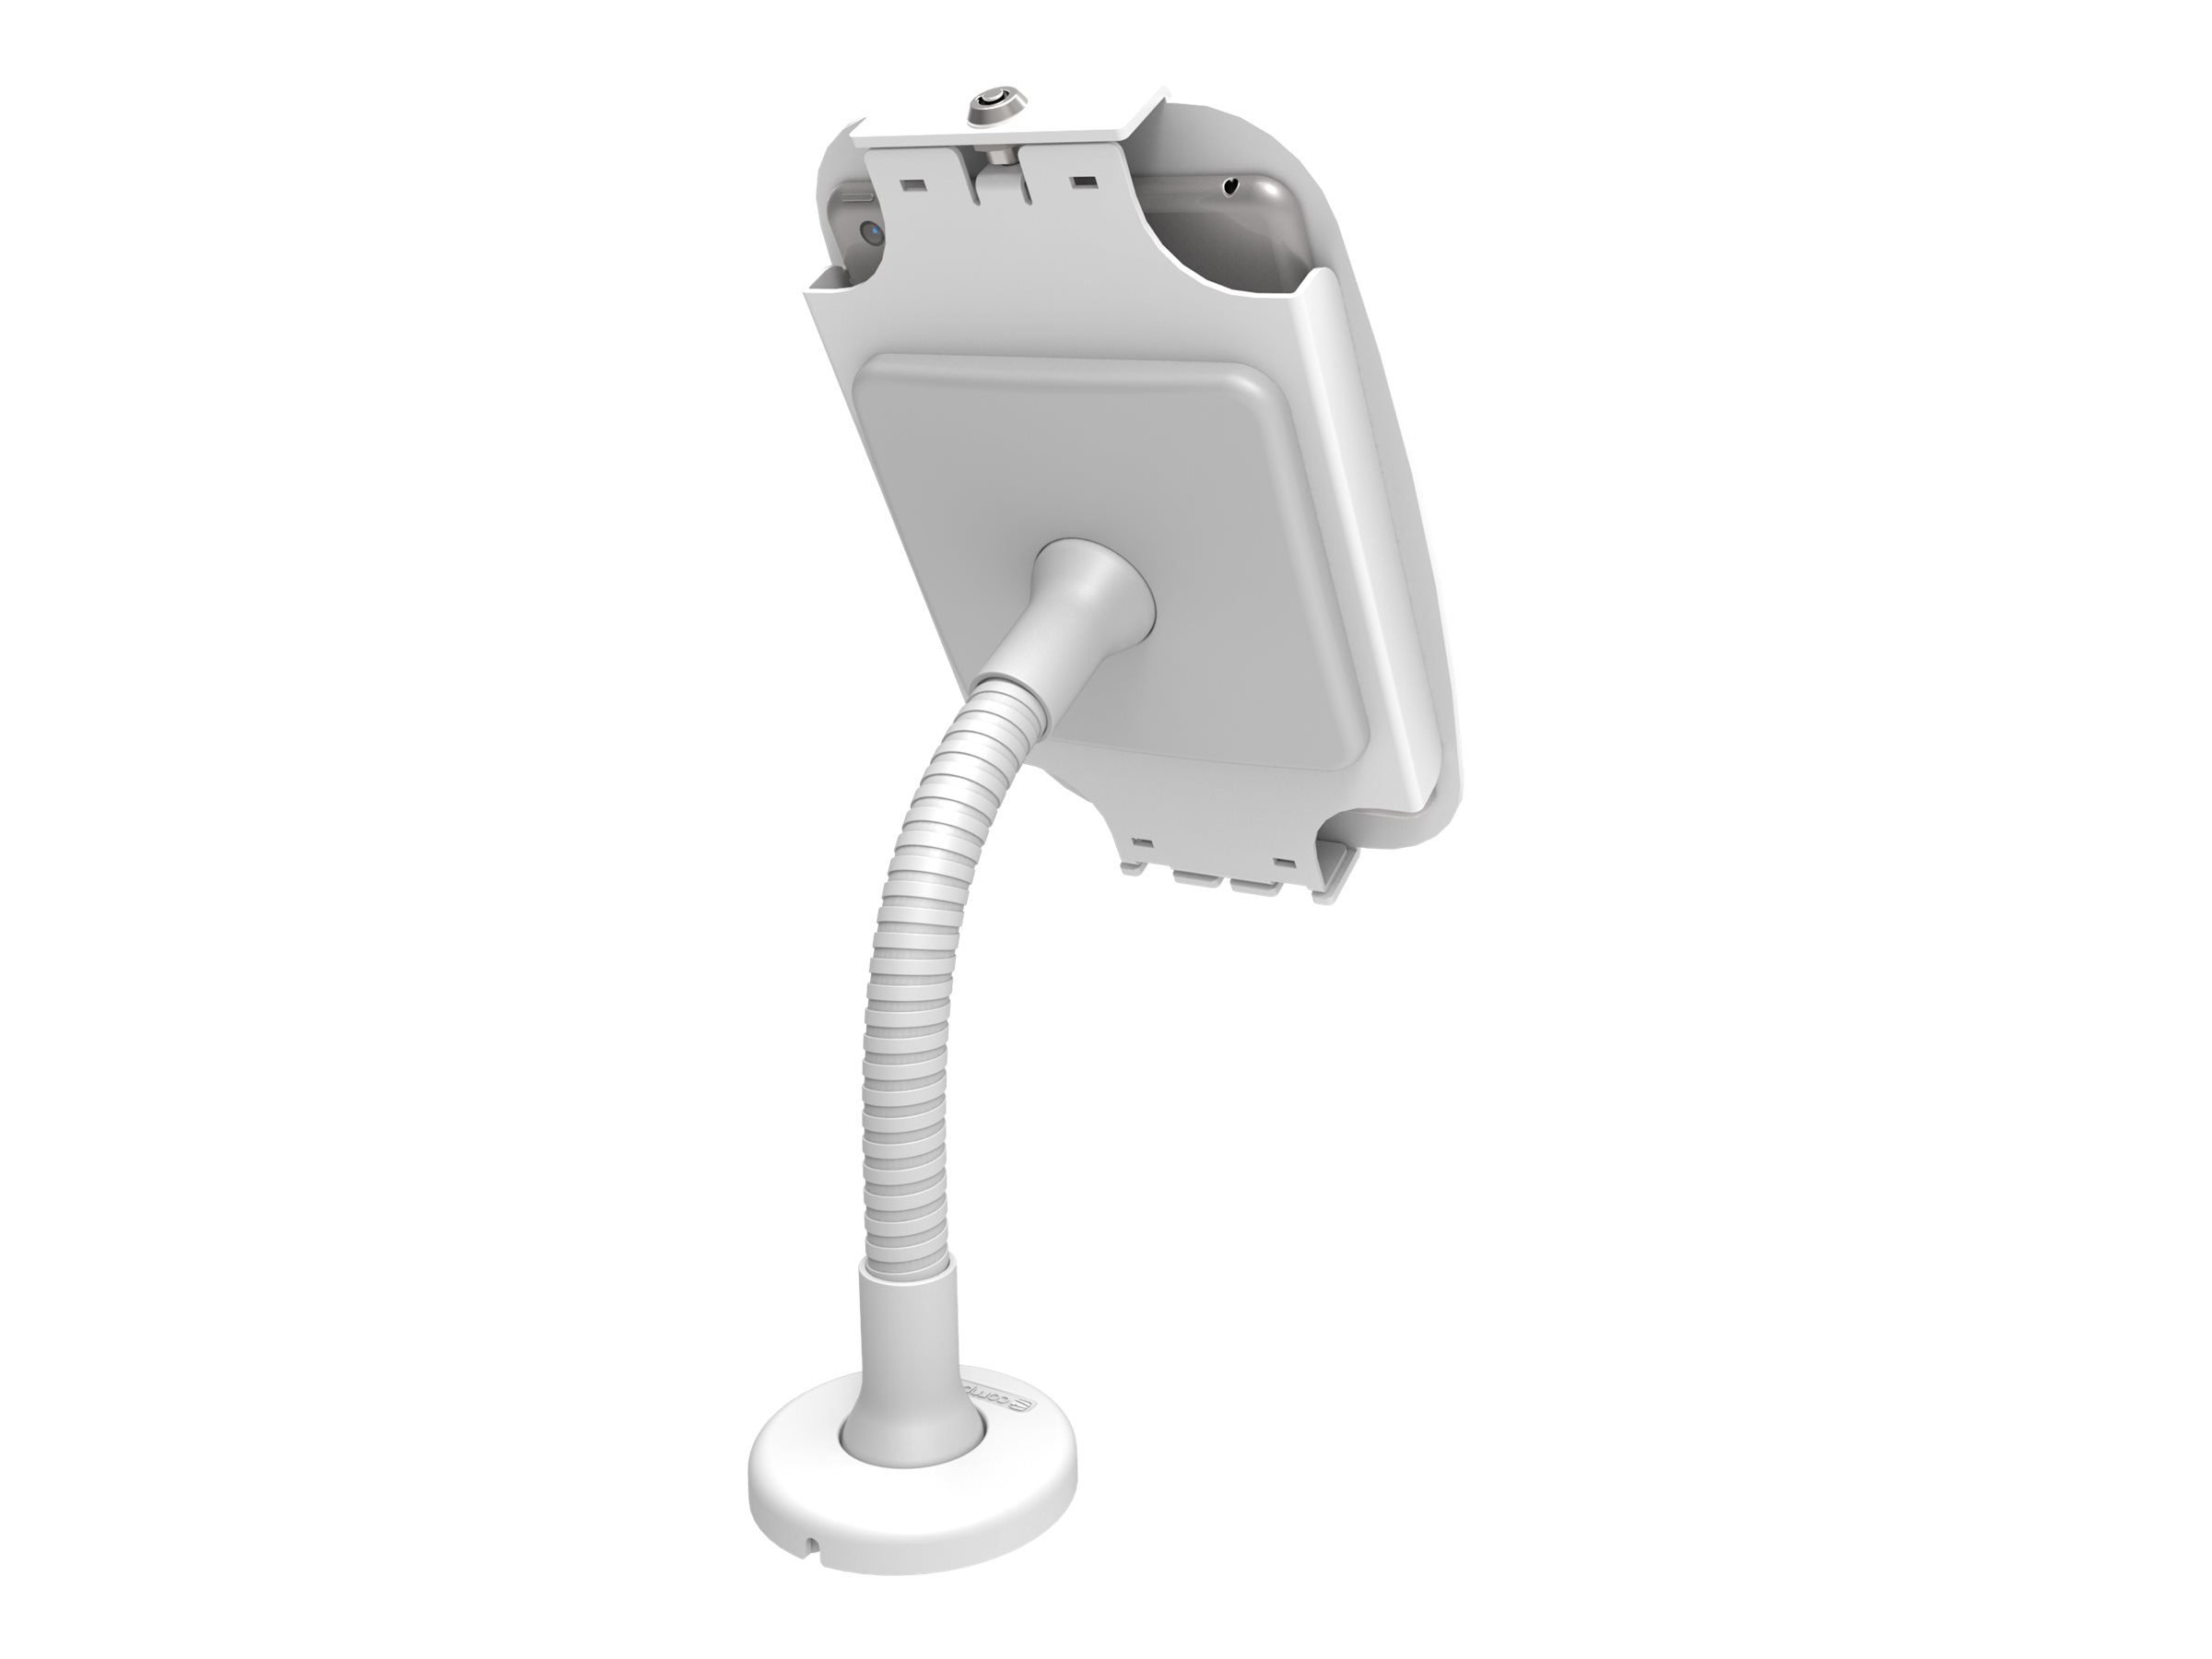 Compulocks Galaxy Space with Flex Arm Mount, White, 159W400GEW